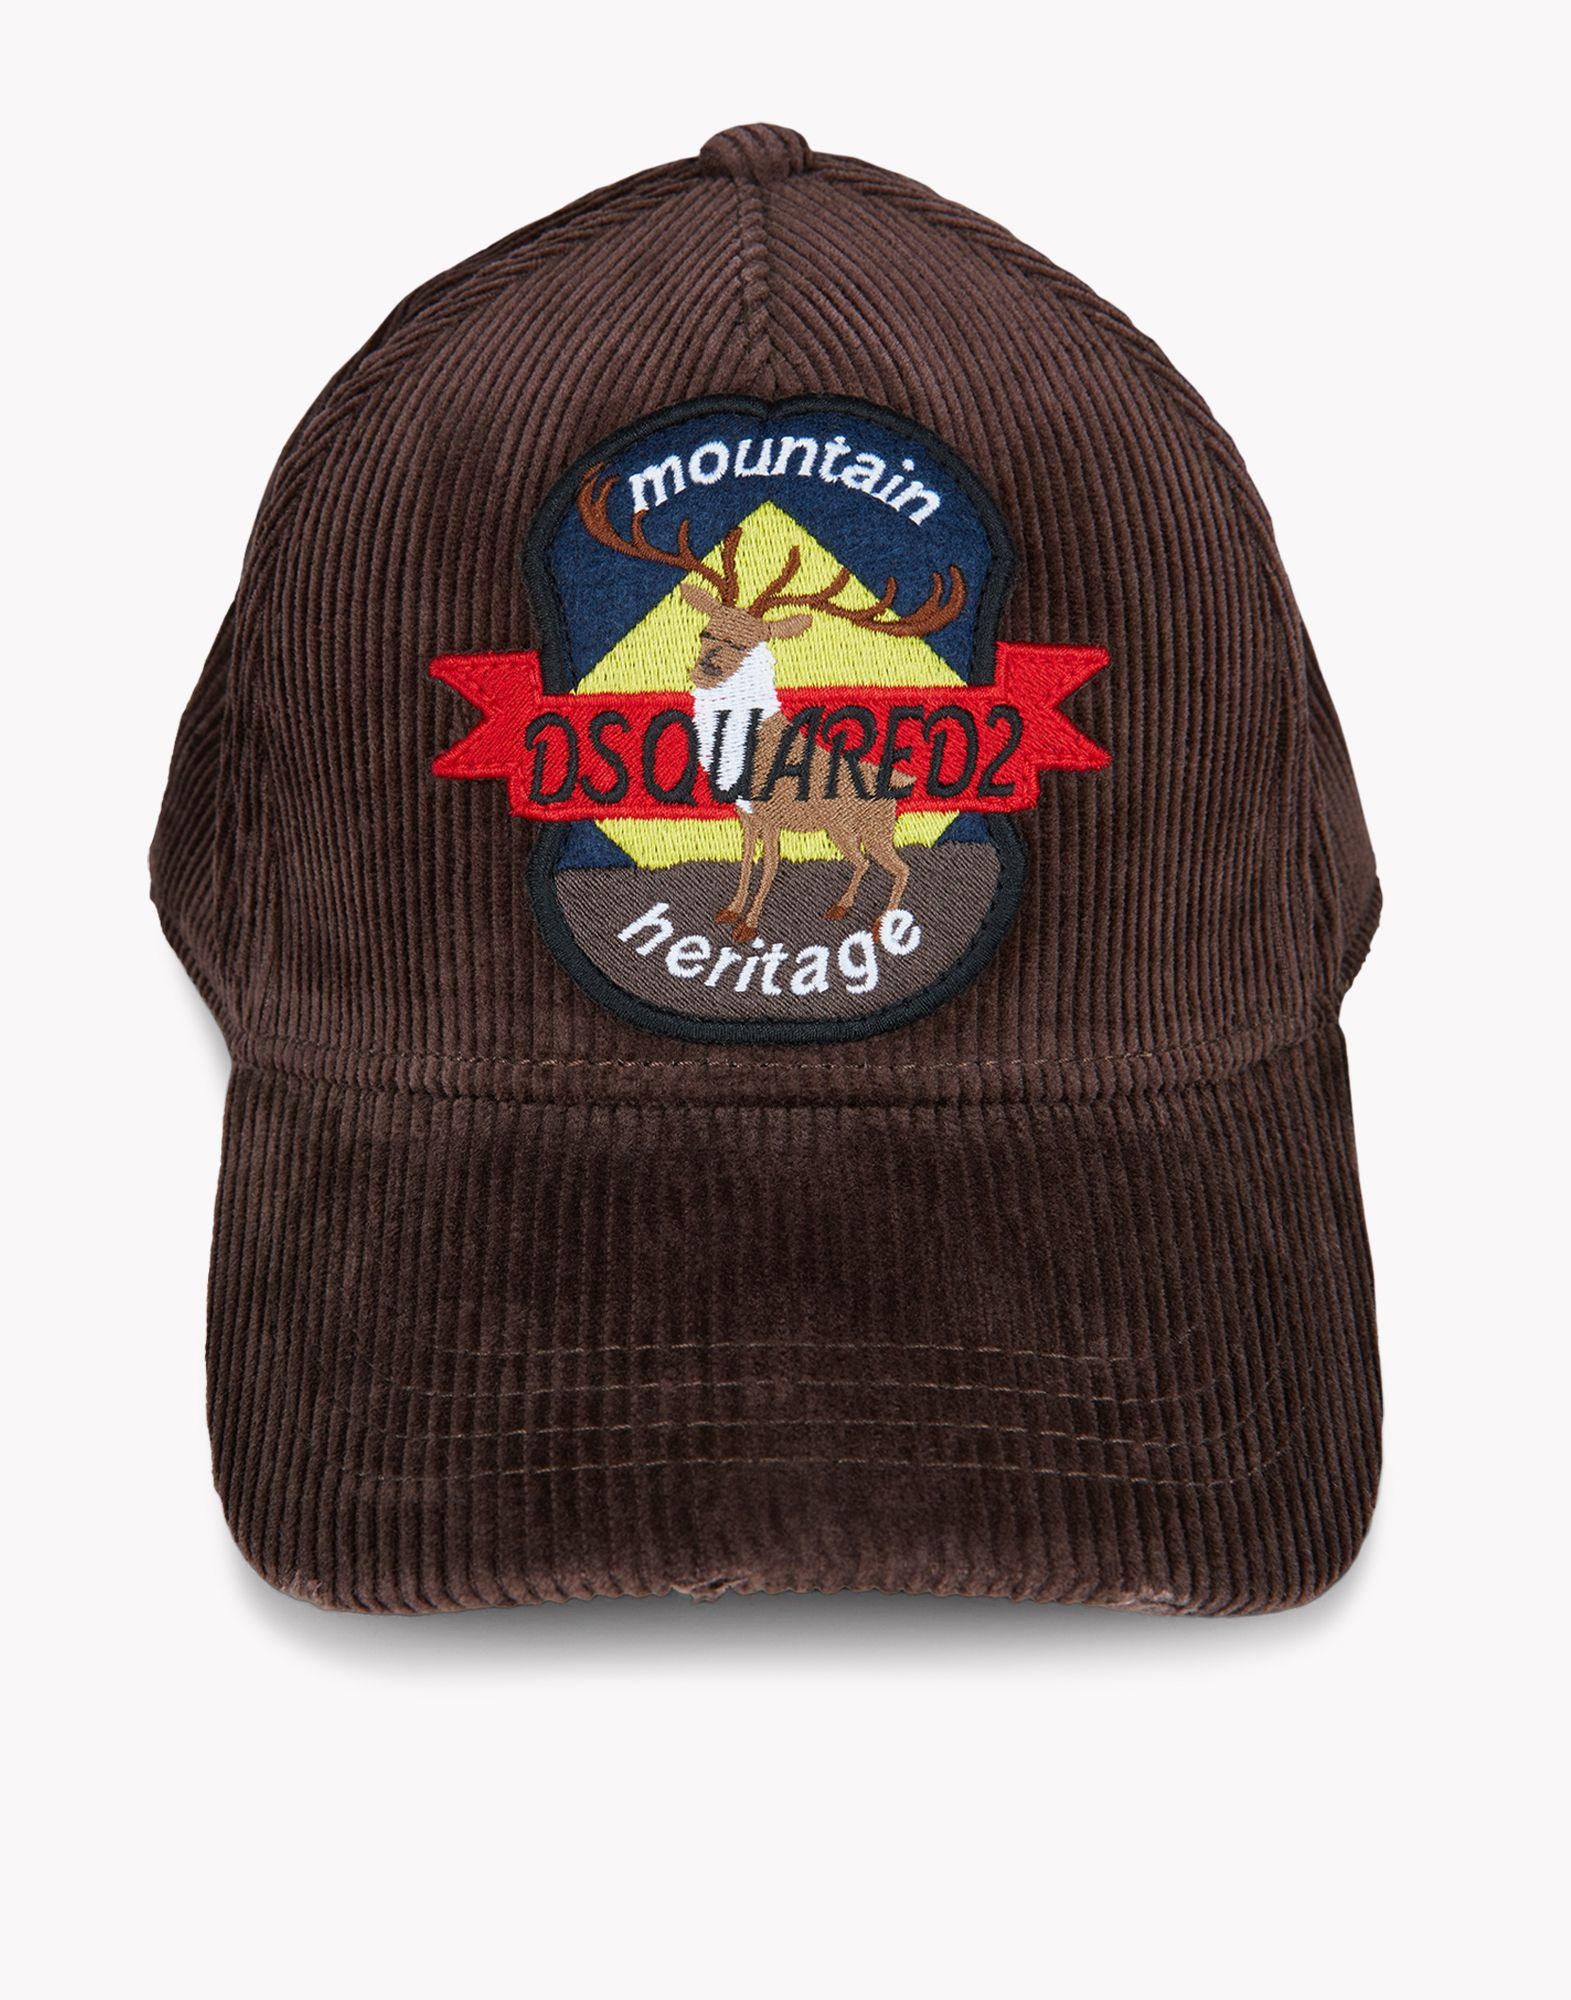 Lyst - DSquared² Corduroy Patch Baseball Cap in Brown for Men cbd7358891ed